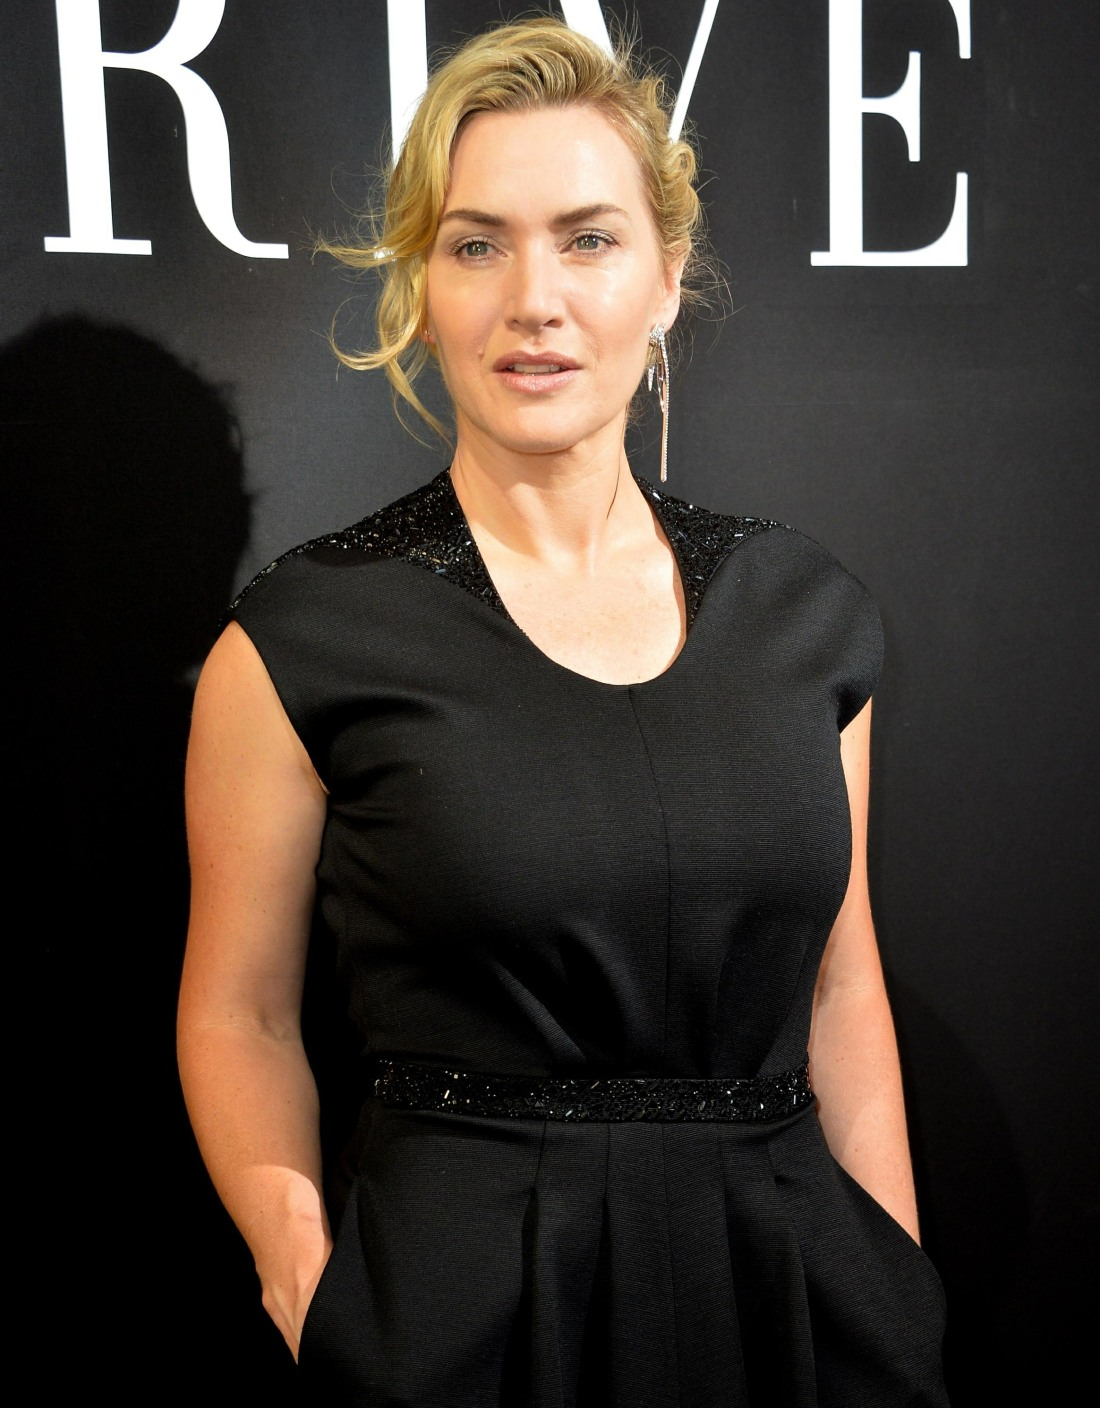 Kate Winslet to be honored with Tribute Actor Award at Toronto International Film Festival 2020 **FILE PHOTOS**